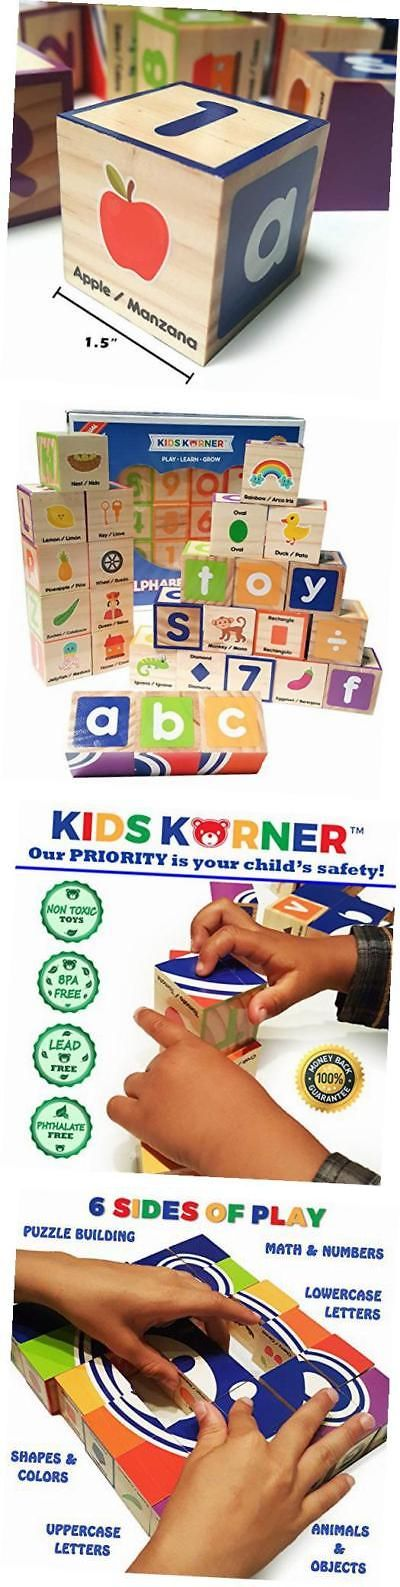 Blocks Tiles and Mats 145931: Abc Blocks Wooden – Bilingual Educational Toy Alphabet Blocks For Toddlers. -> BUY IT NOW ONLY: $36.82 on eBay!